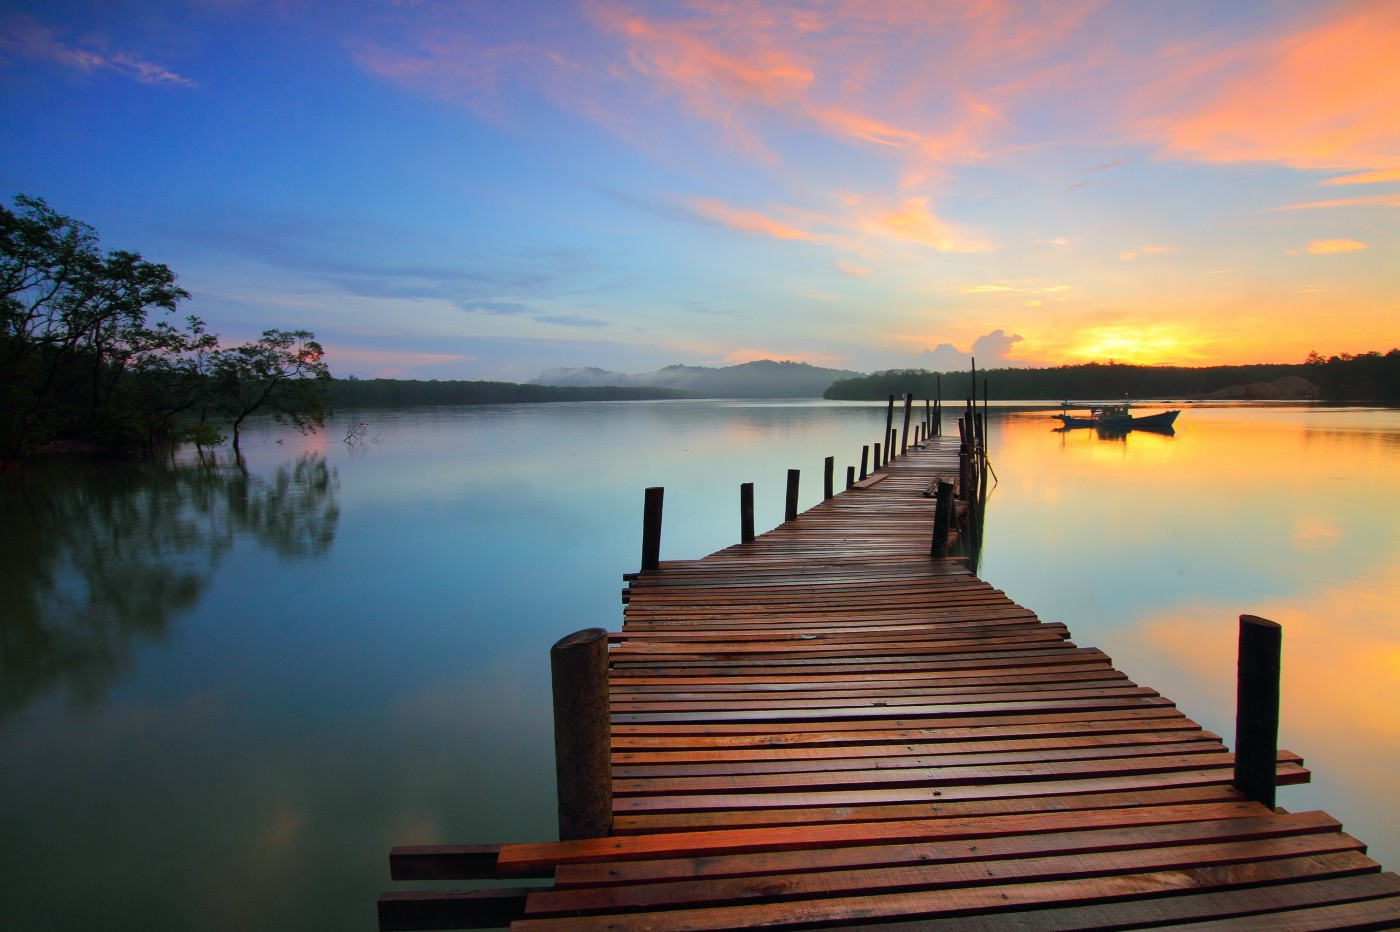 Wooden jetty leading out to lake with boat in distance at sunrise.